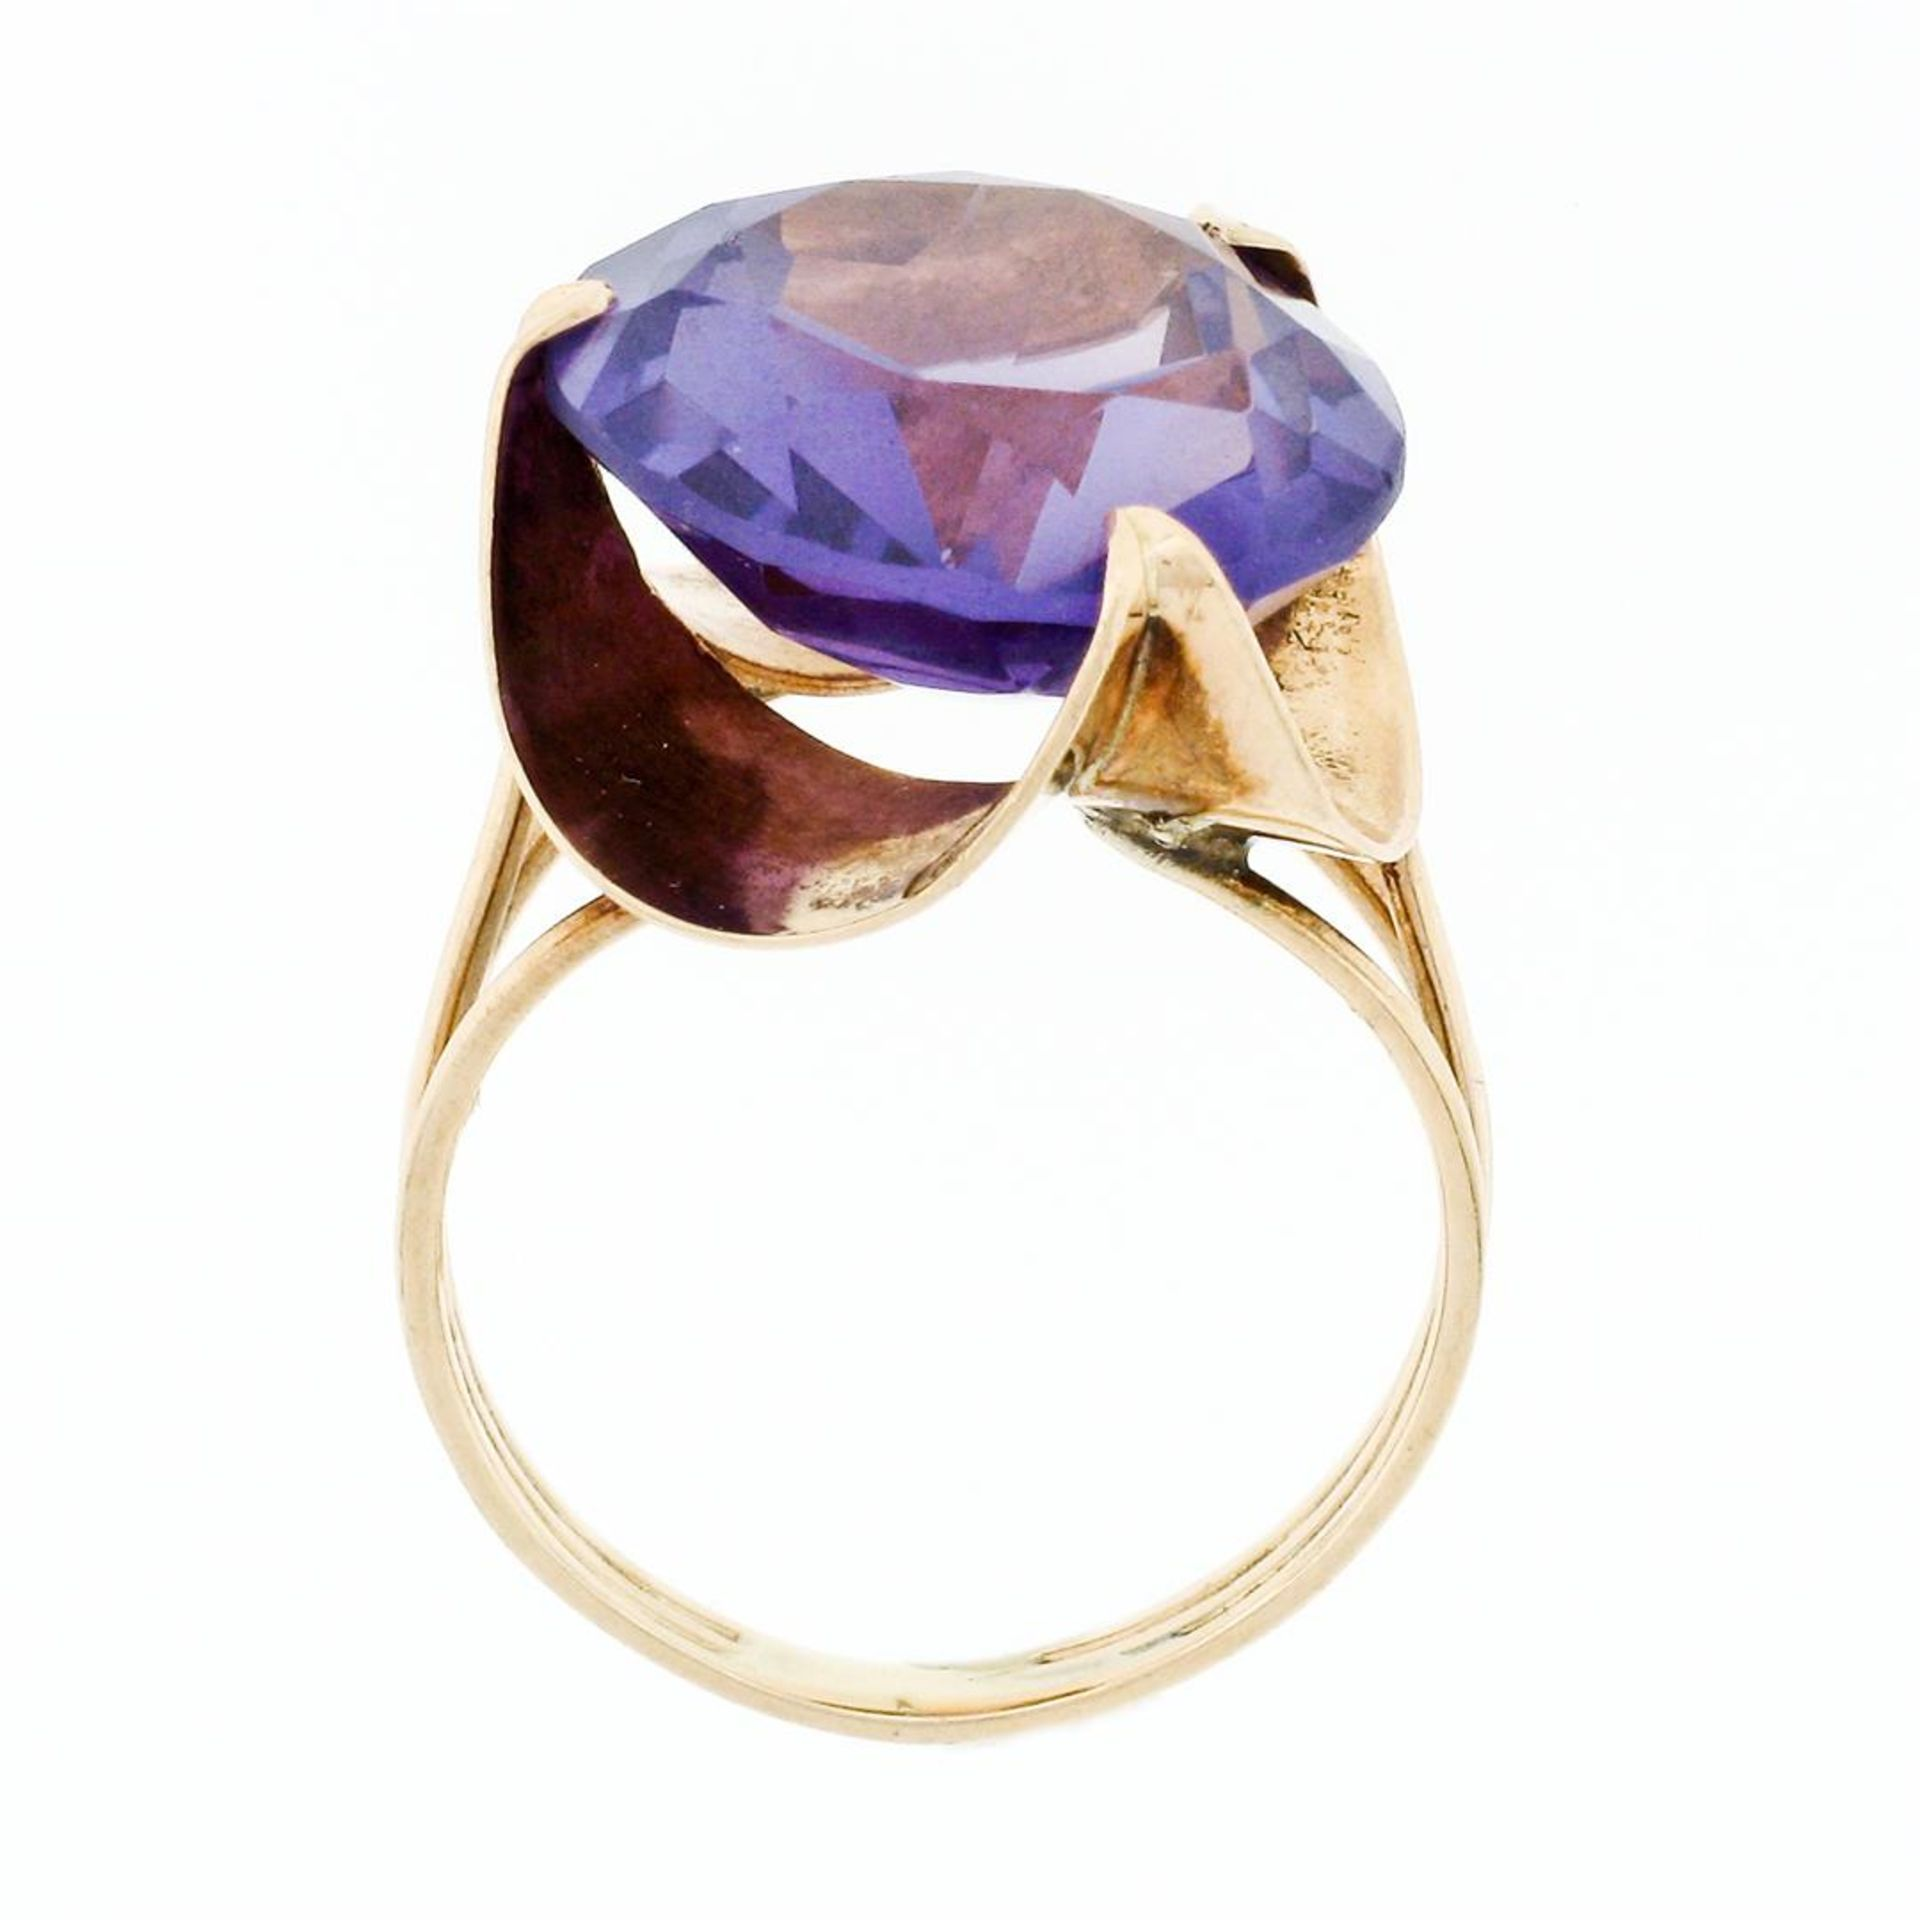 Retro Vintage Handmade 14k Rose Gold 13.7mm Synthetic Alexandrite Solitaire Ring - Image 8 of 8